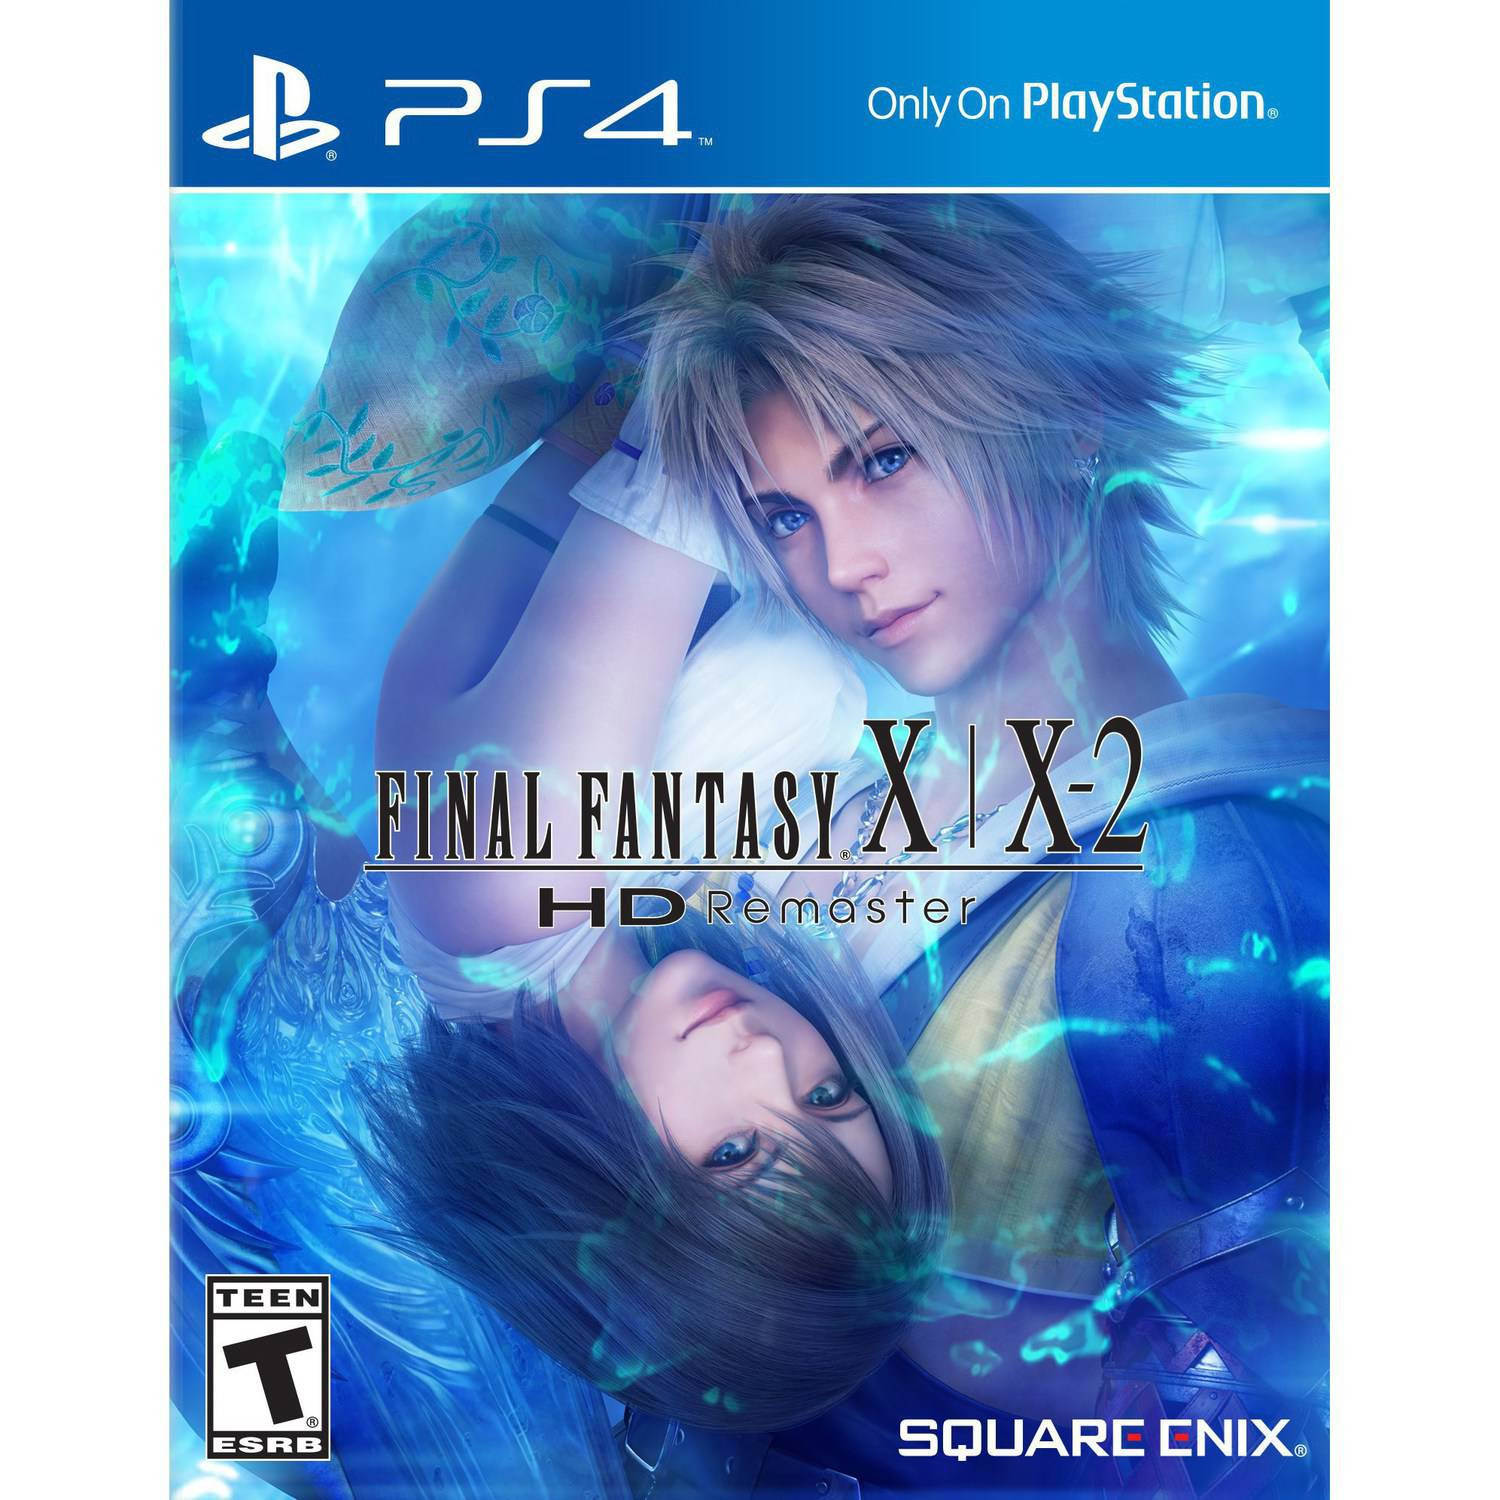 Final Fantasy X/X-2 Hd (PS4) - Pre-Owned